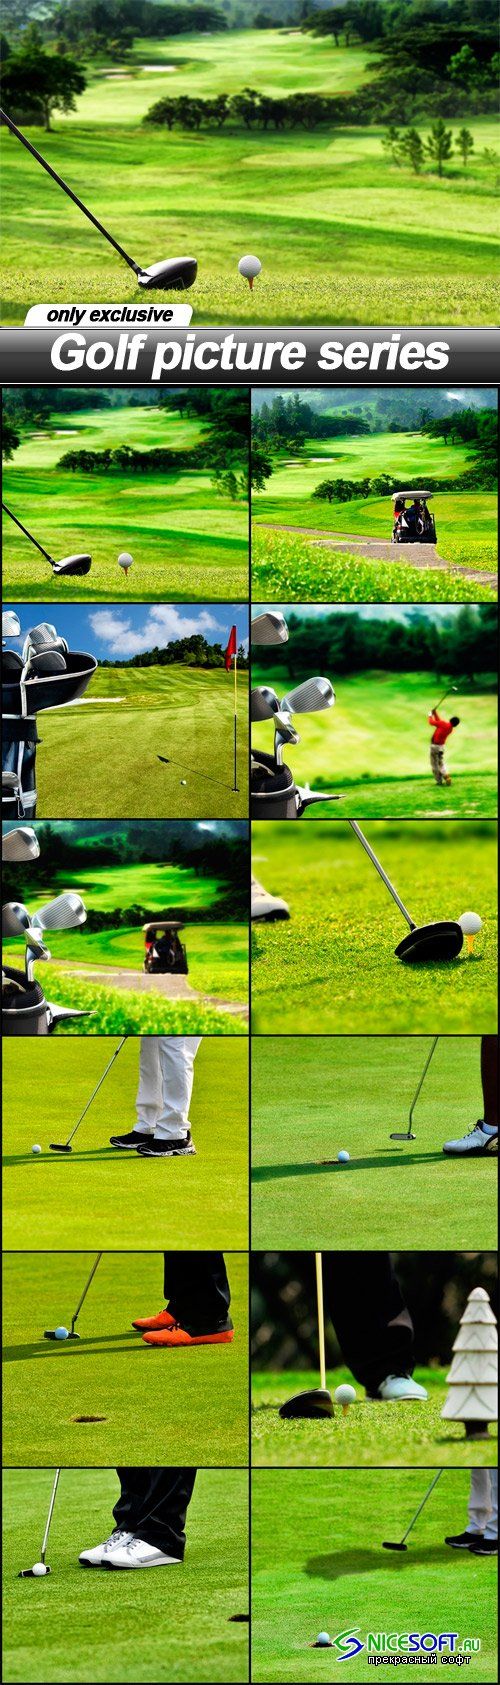 Golf picture series